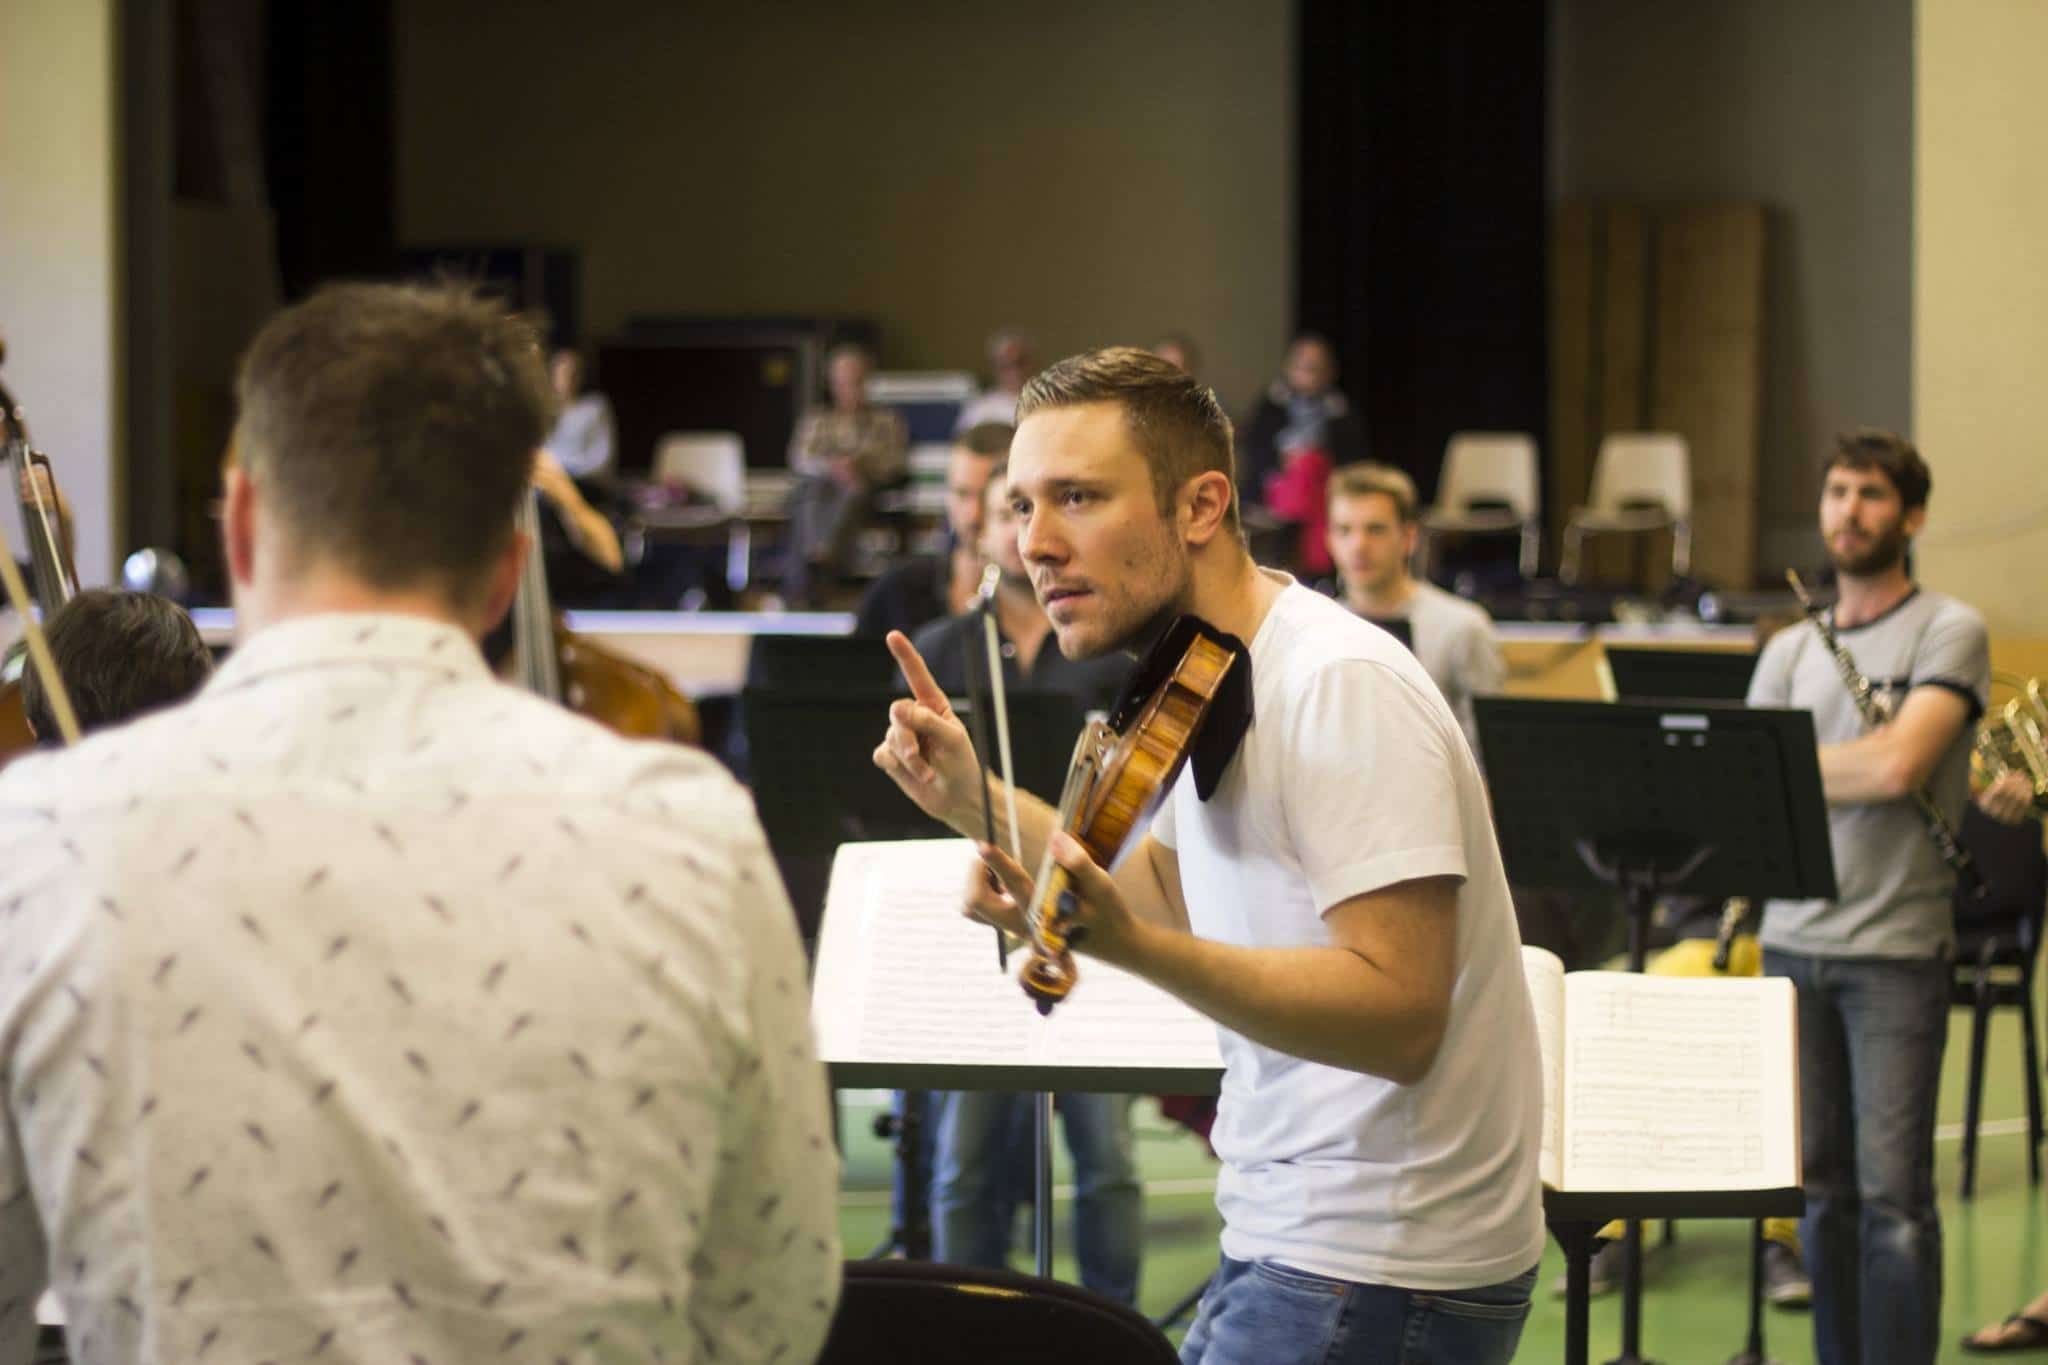 Swiss promote concertmaster to music director